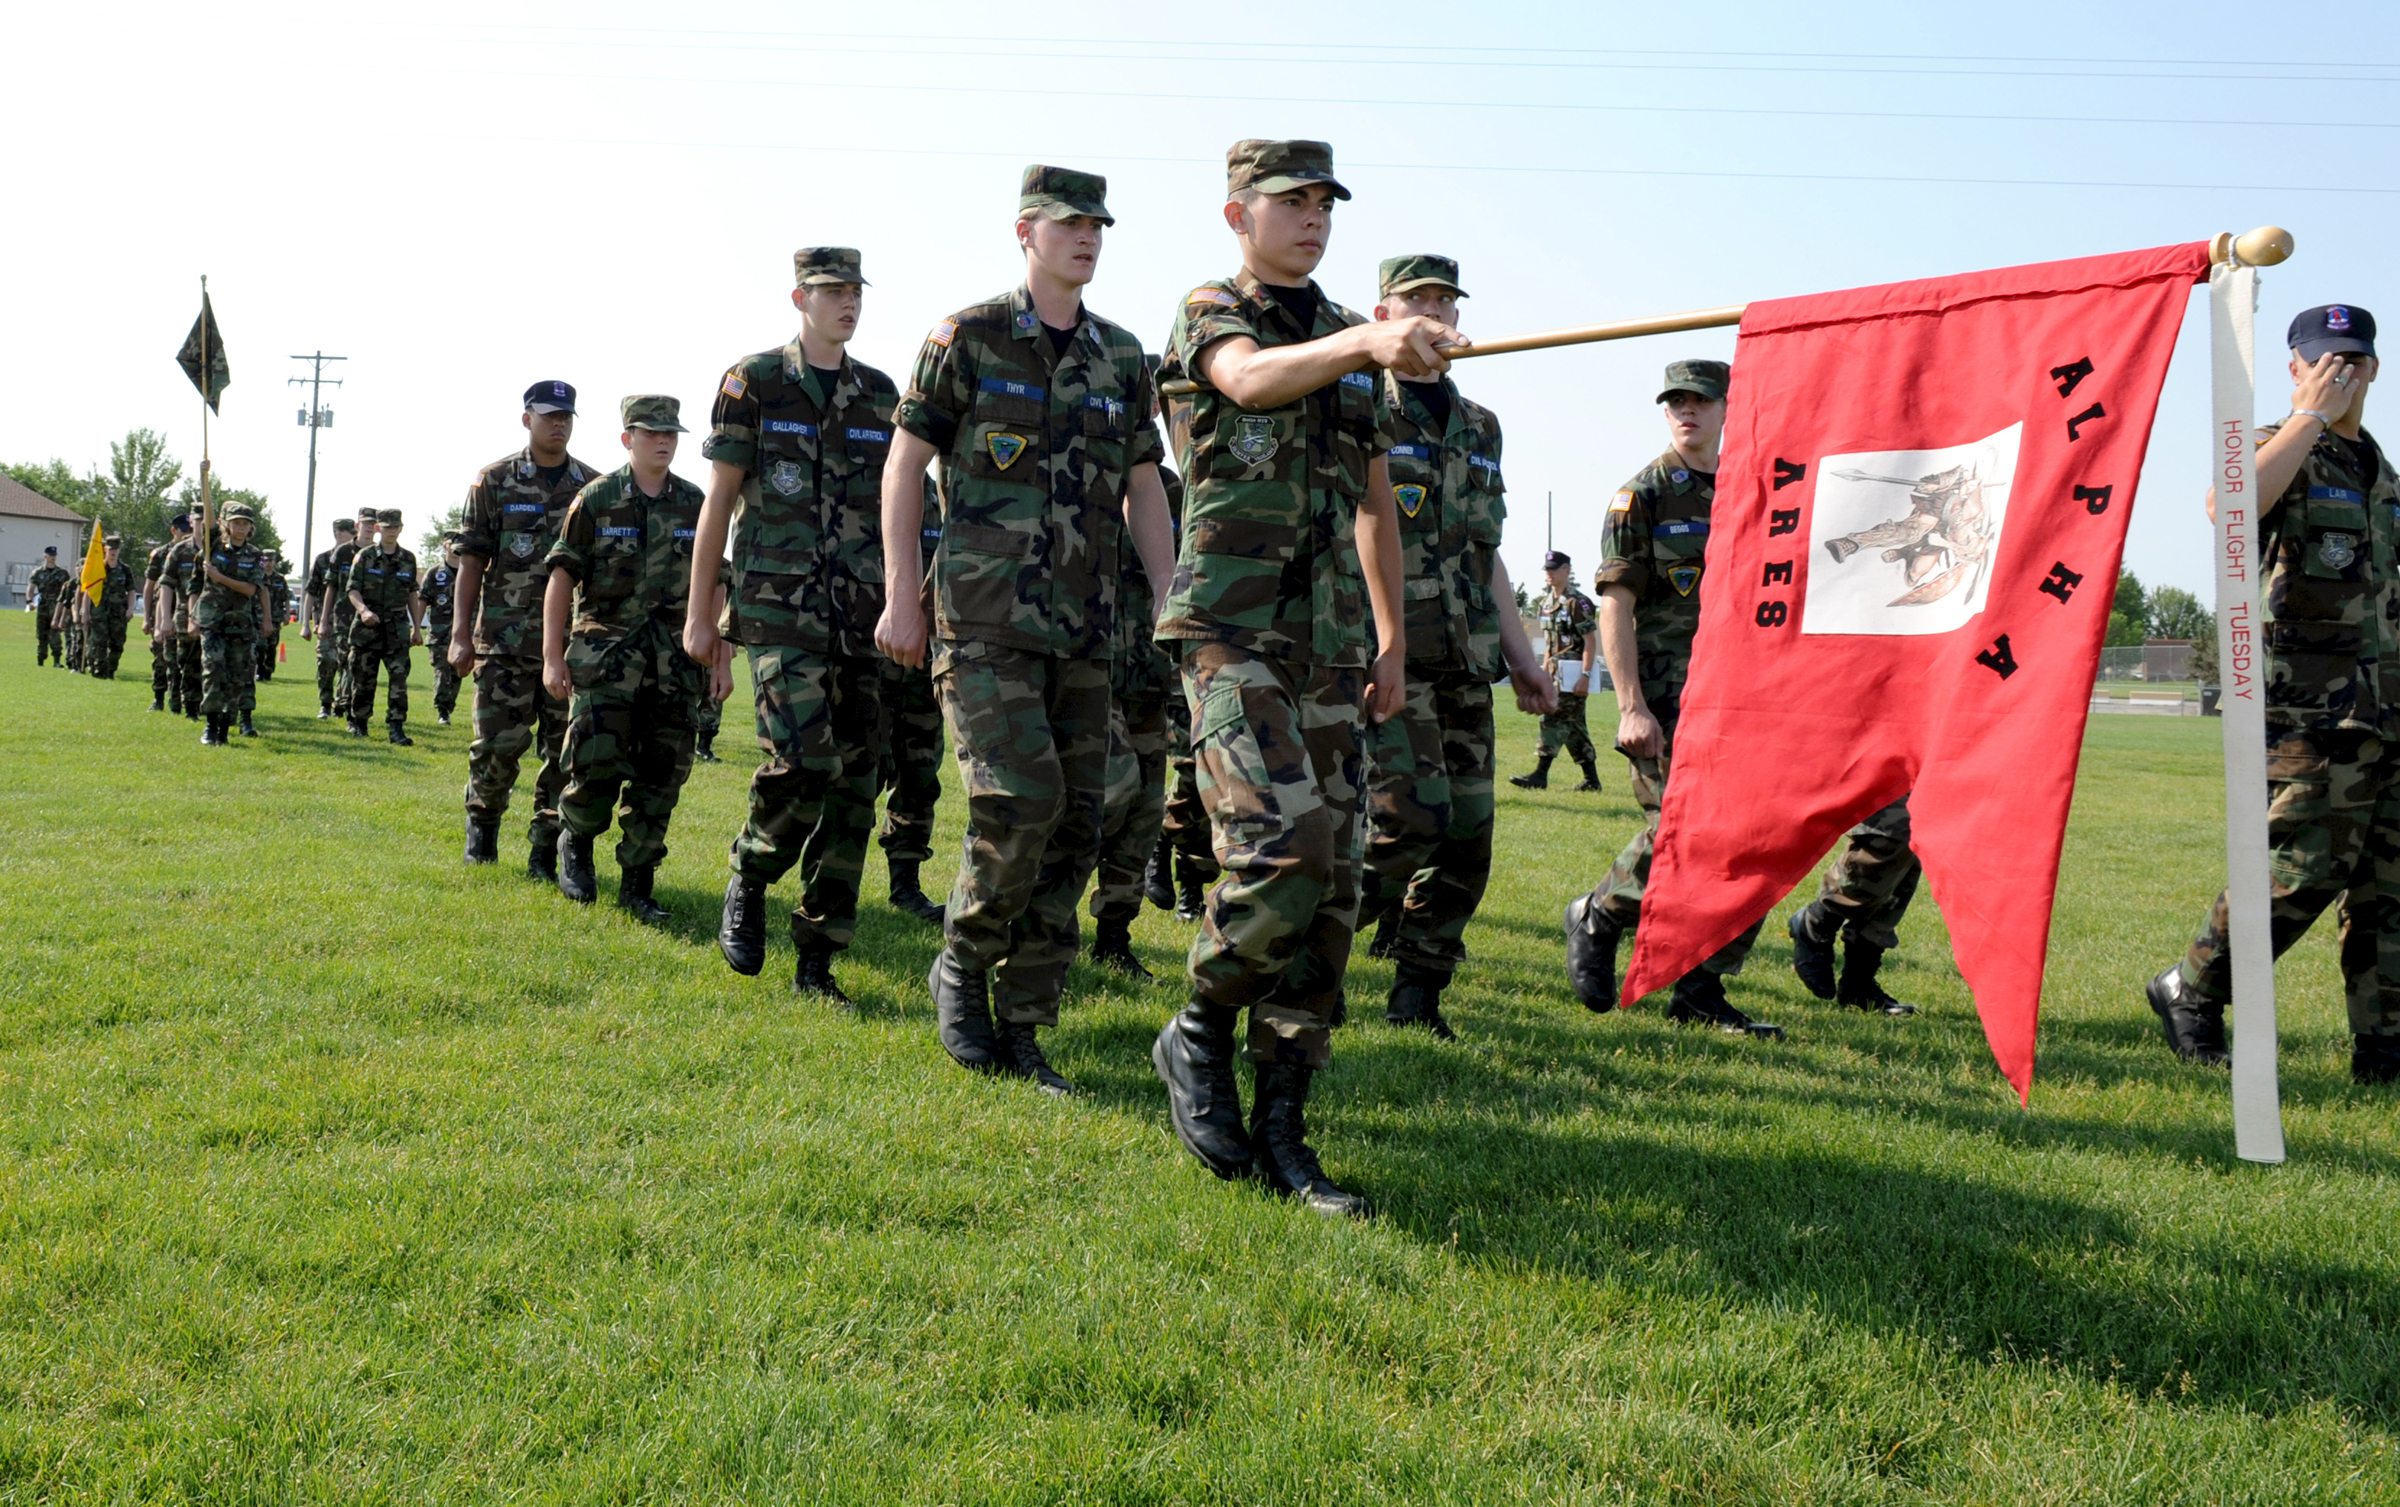 File:Cadets from the Civil Air Patrol, Rocky Mountain region, practice drill .